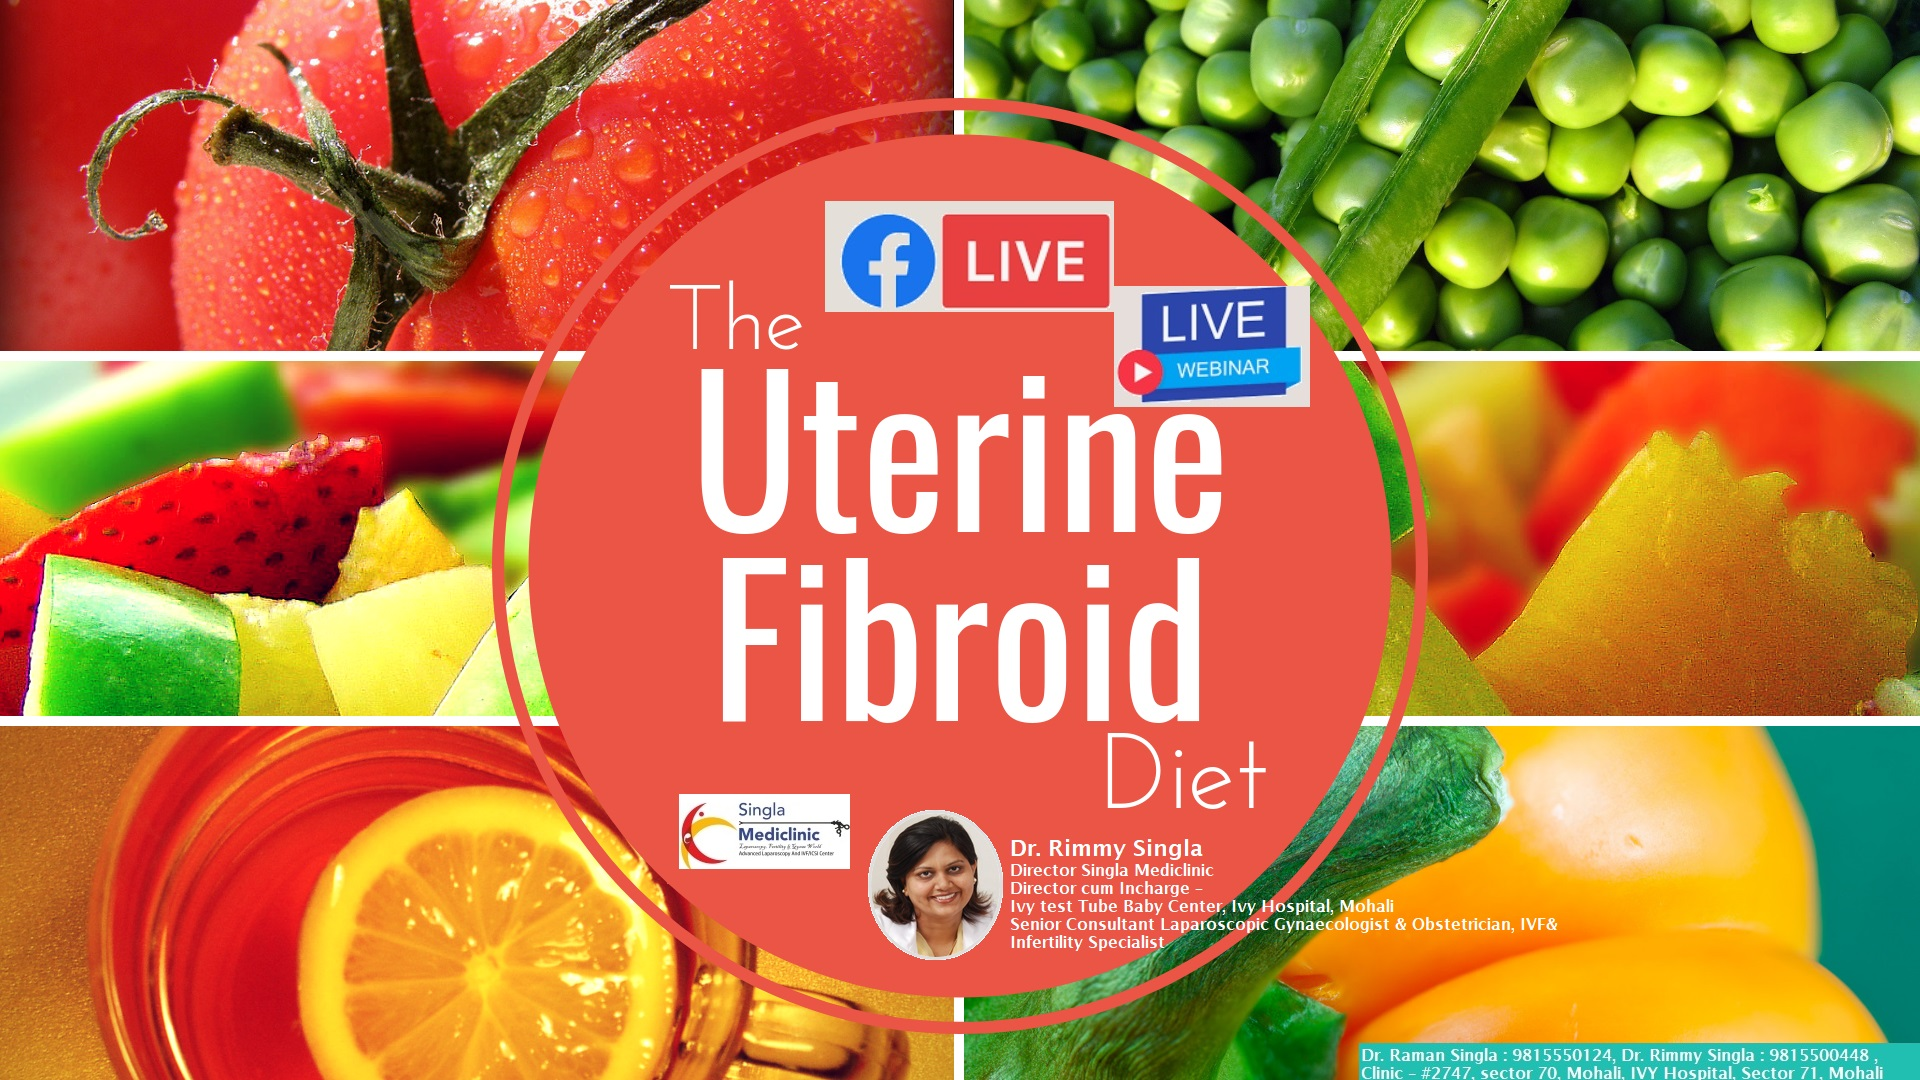 Role of Diet in fibroid facebook Live talk by Dr. Rimmy Singla